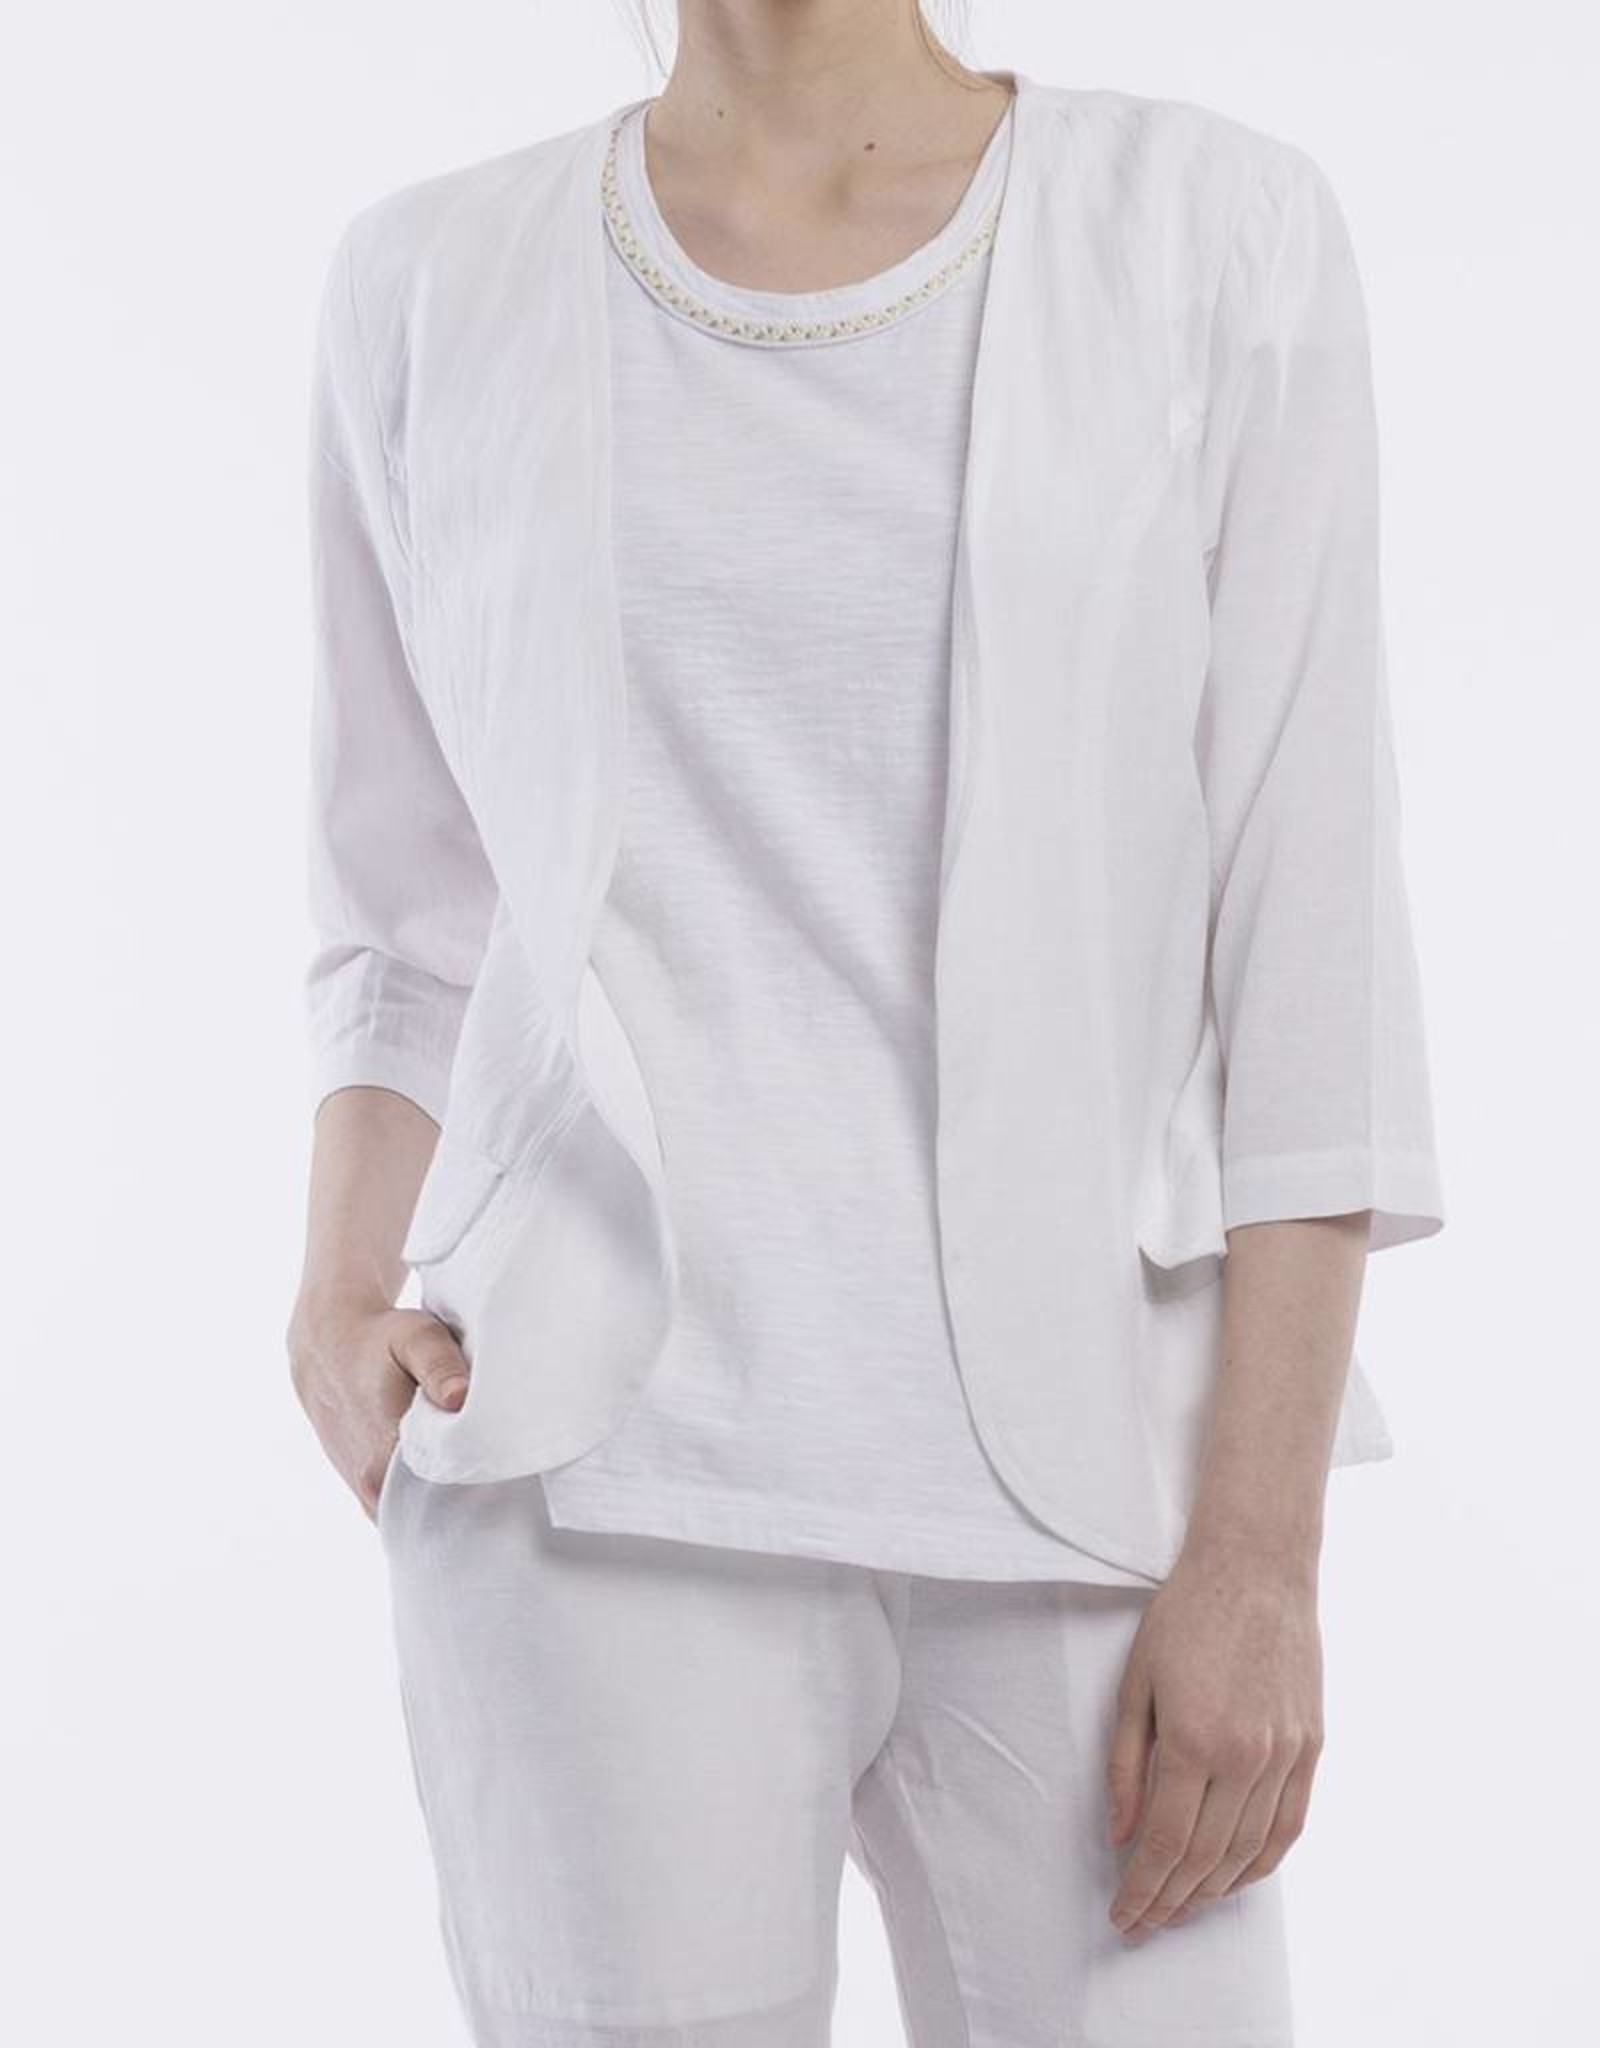 Orientique Linen Jacket in White